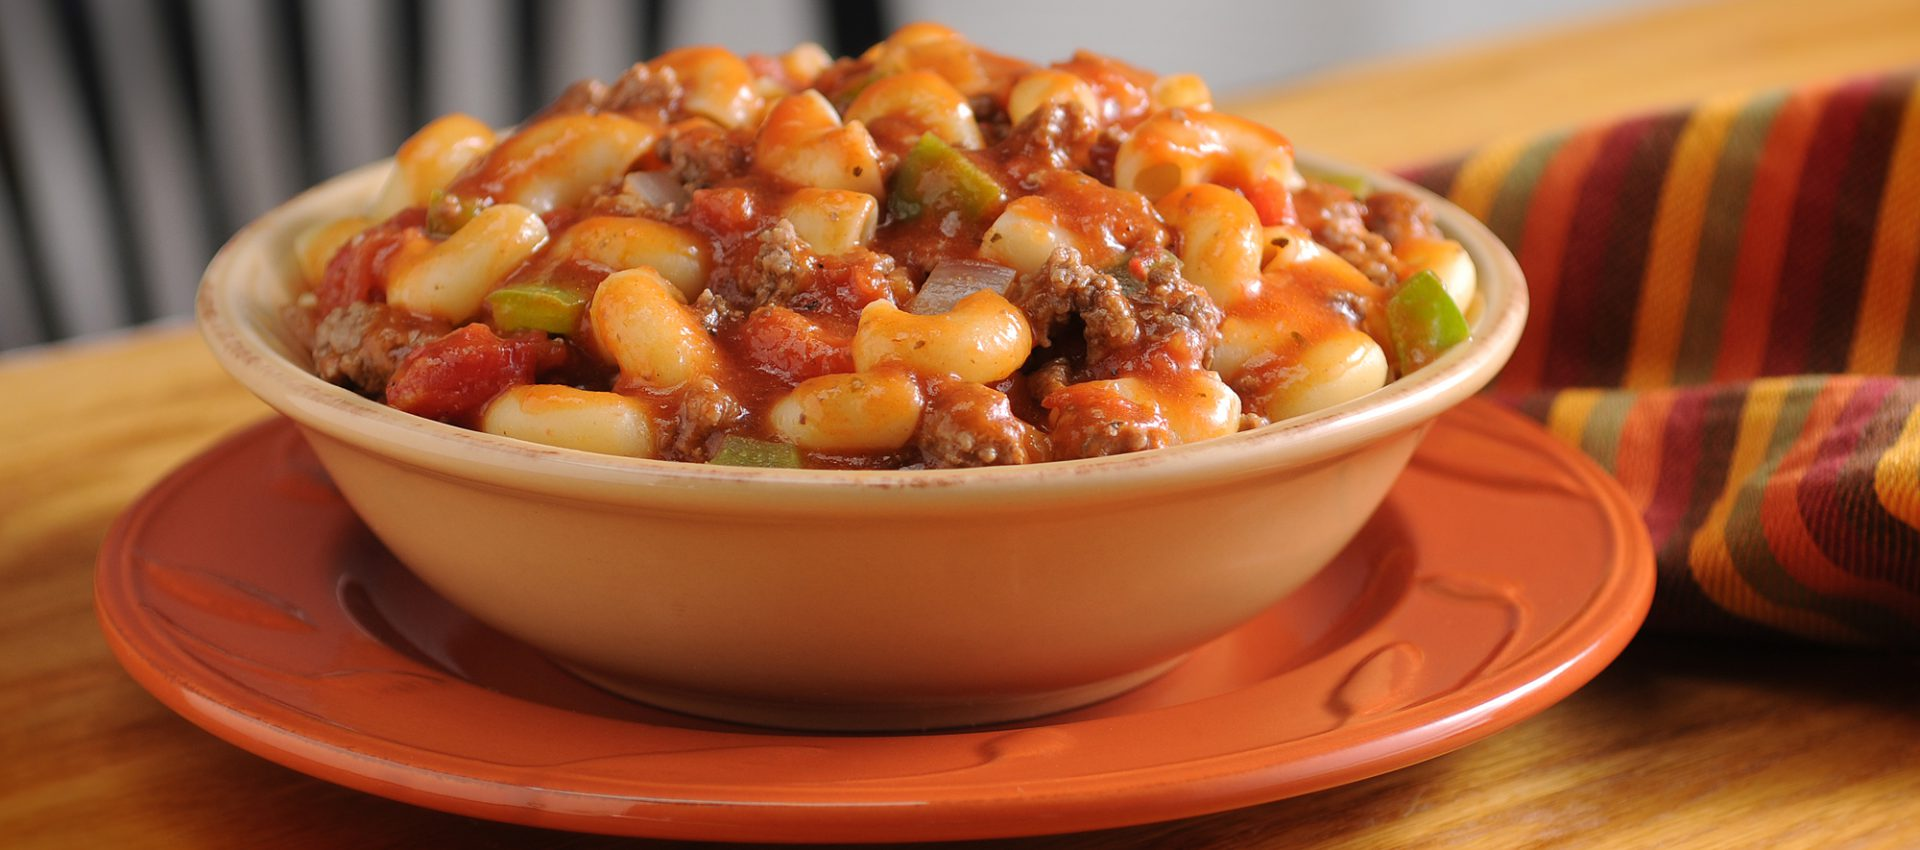 Goulash-cropped-WEB-1920x850 Italian Stew with Ground Beef